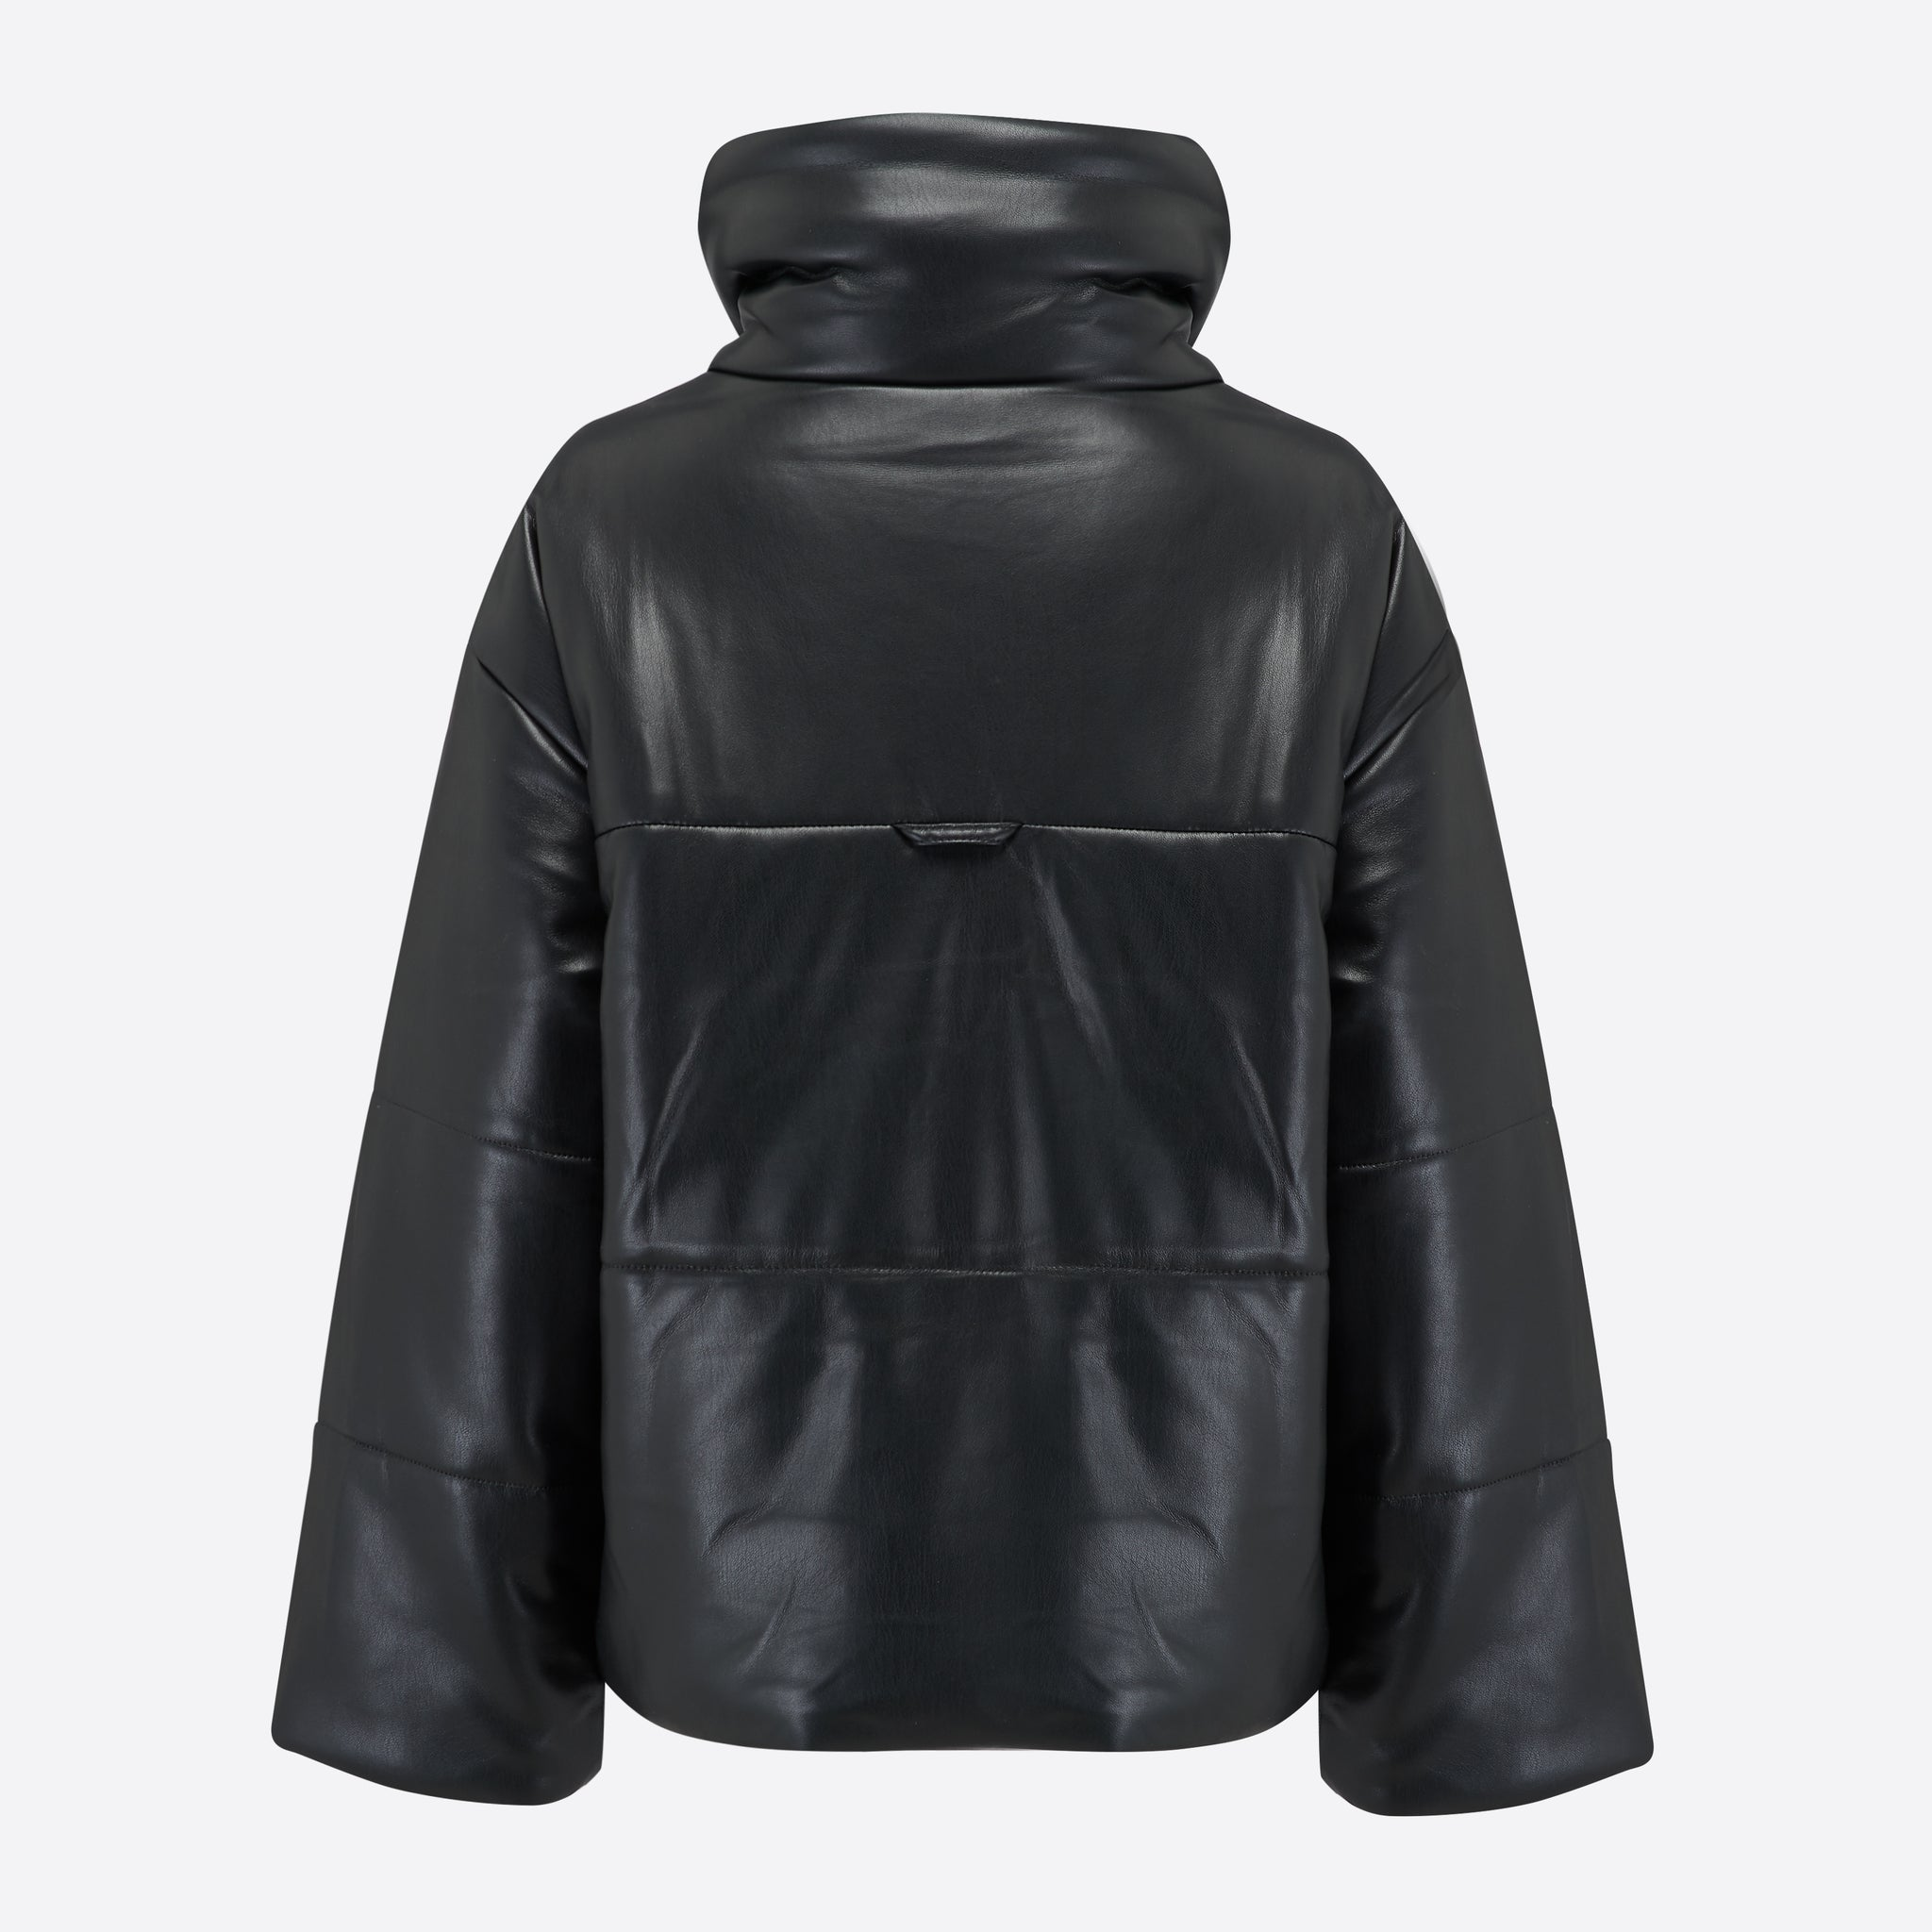 Nanushka Hide Vegan Leather Puffer Jacket in Black